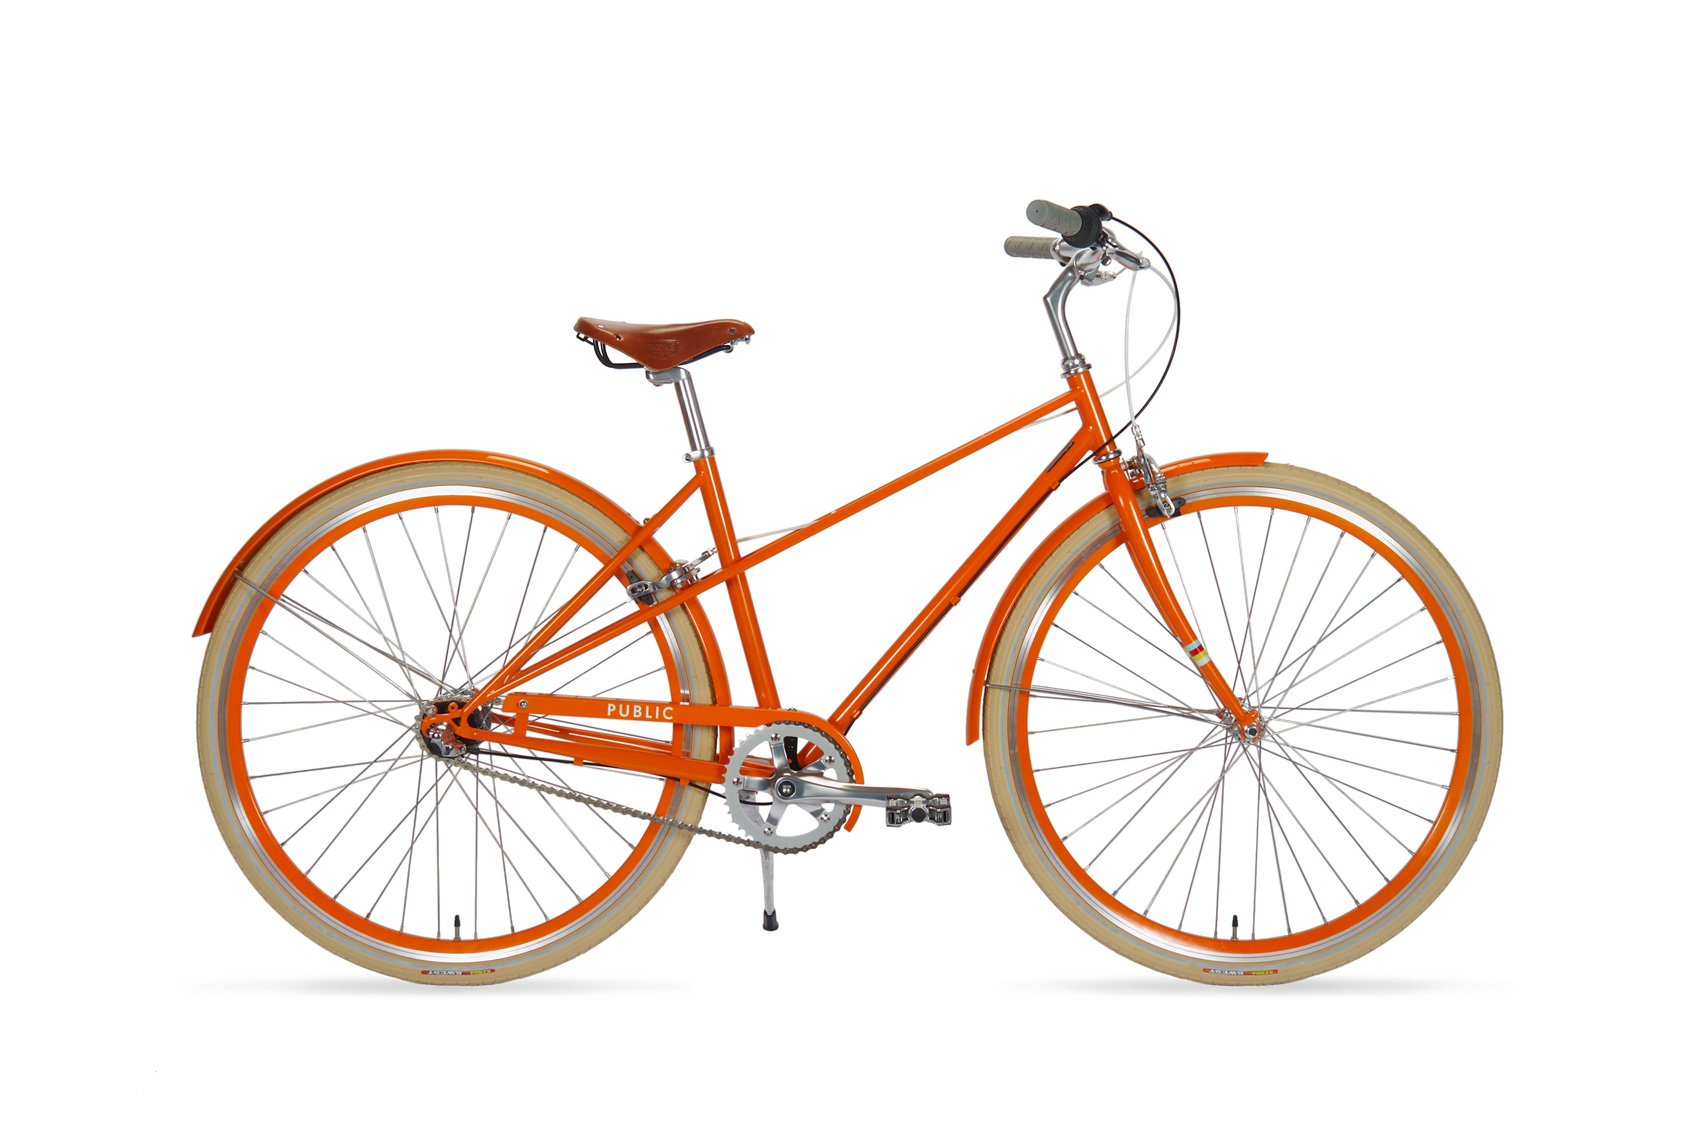 006_orange-m3-brooks-saddle